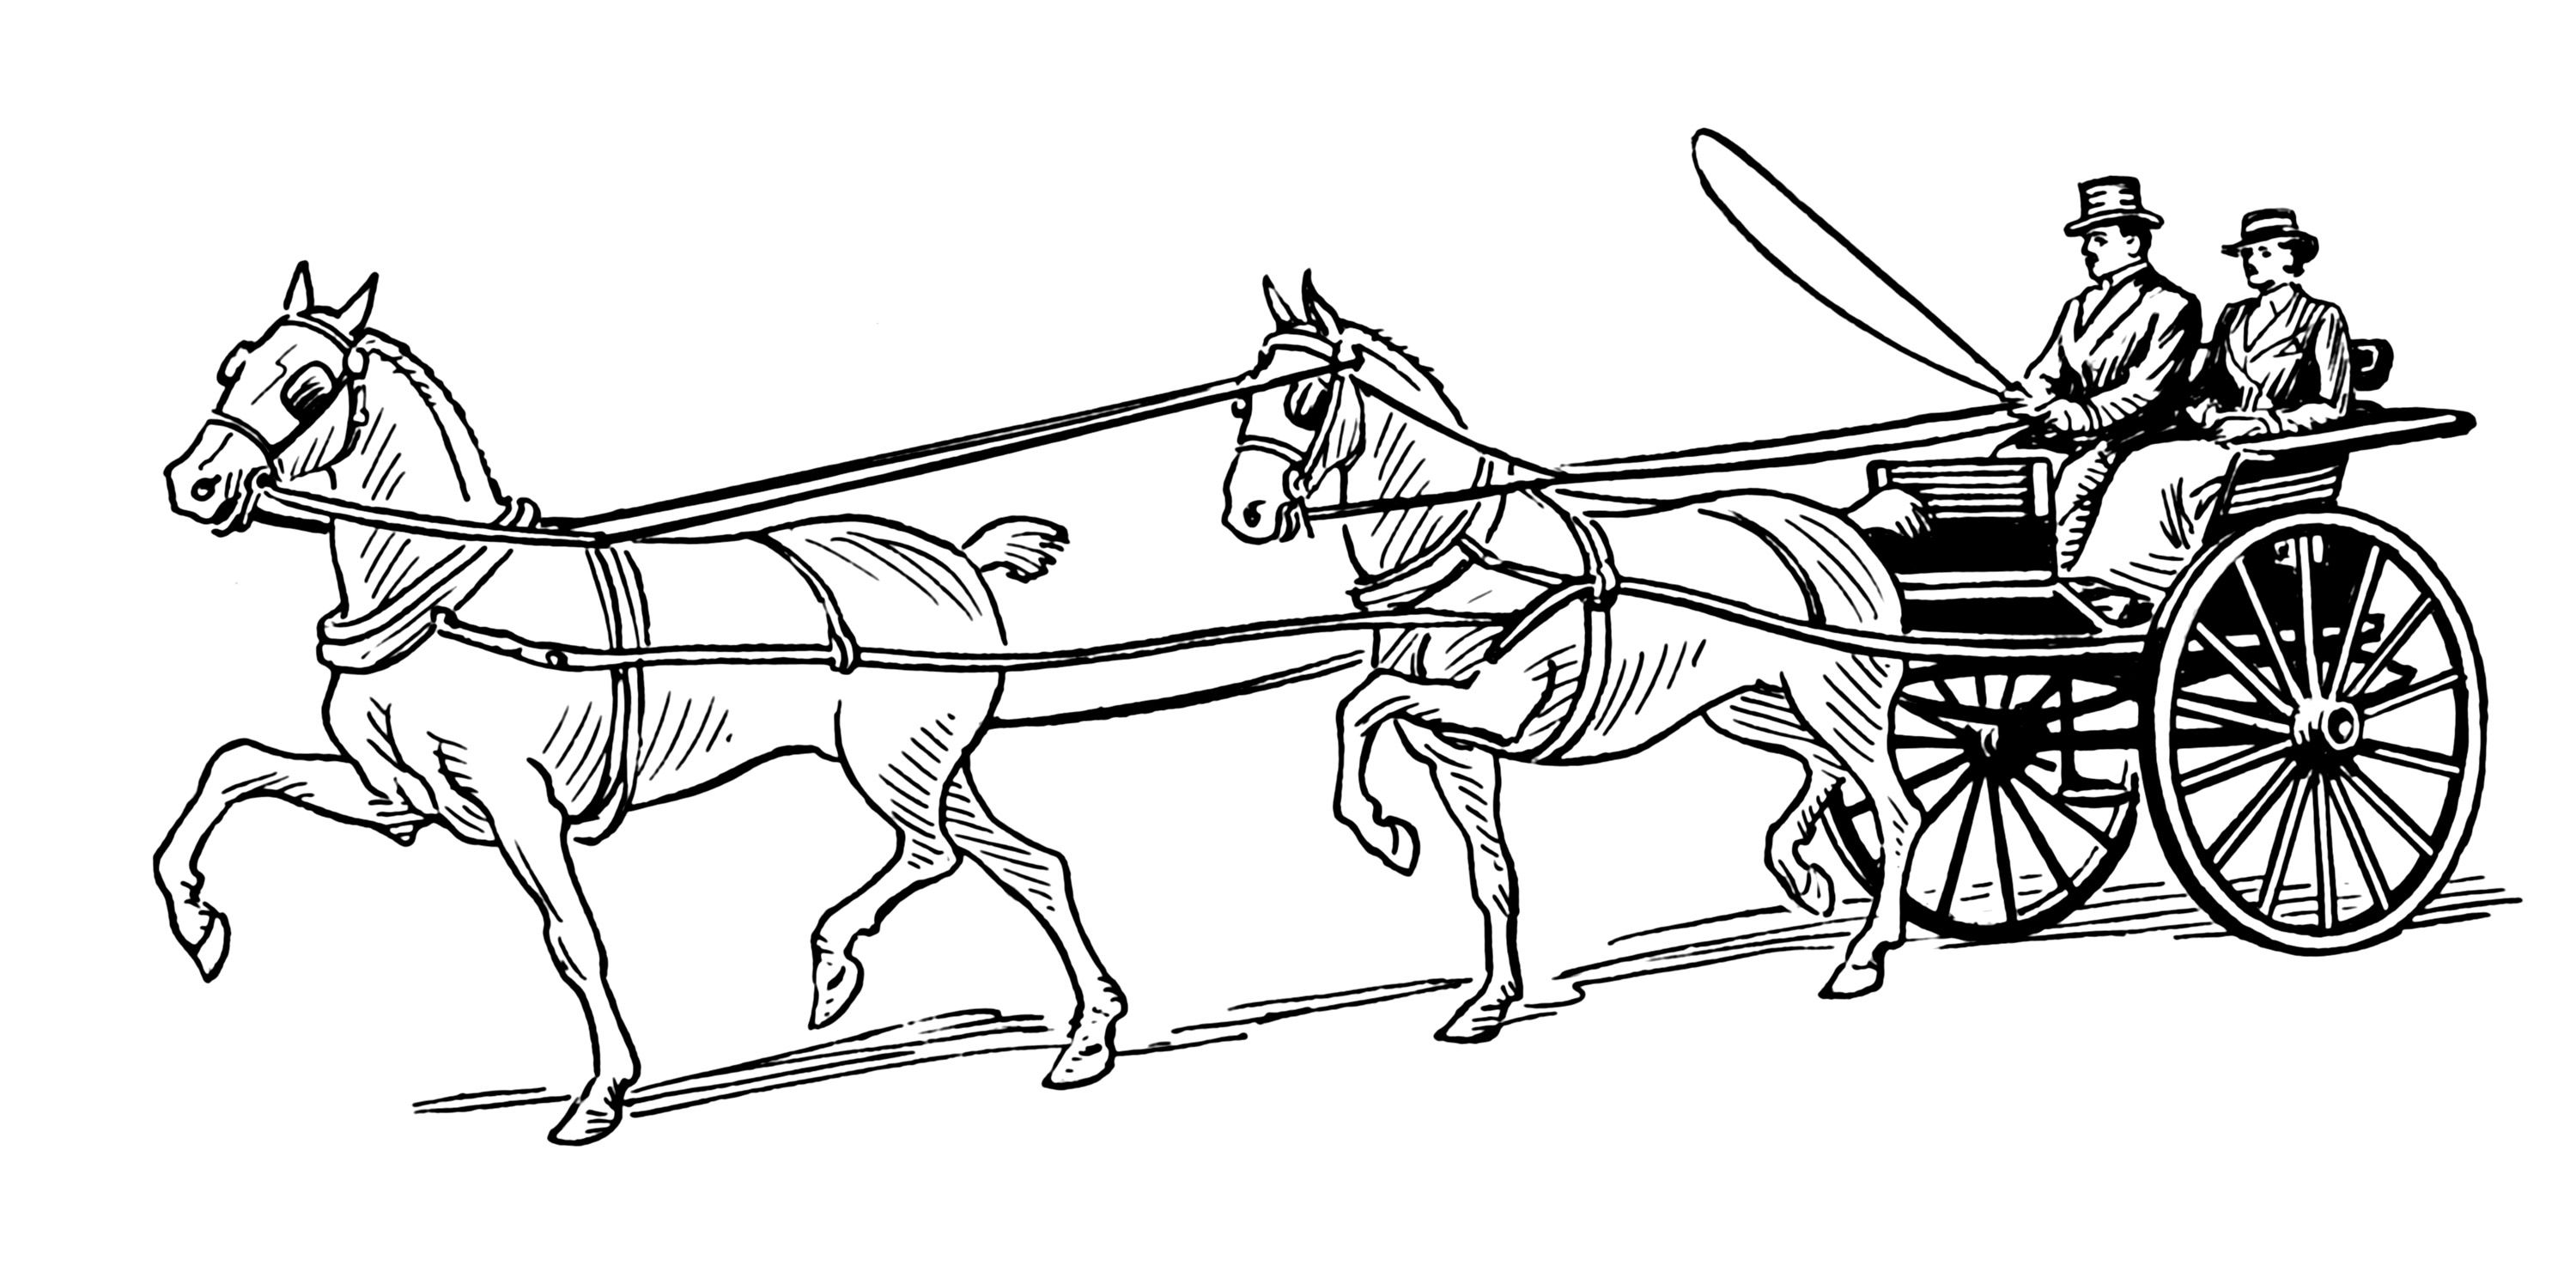 Horse Coloring Pages Coloring Rocks Horse Coloring Pages Farm Animal Coloring Pages Horse Coloring